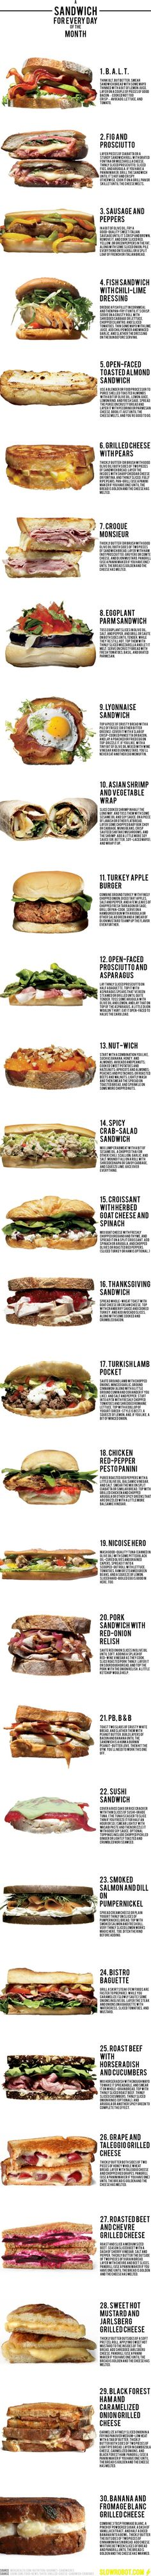 sandwich a day keeps the doctor away